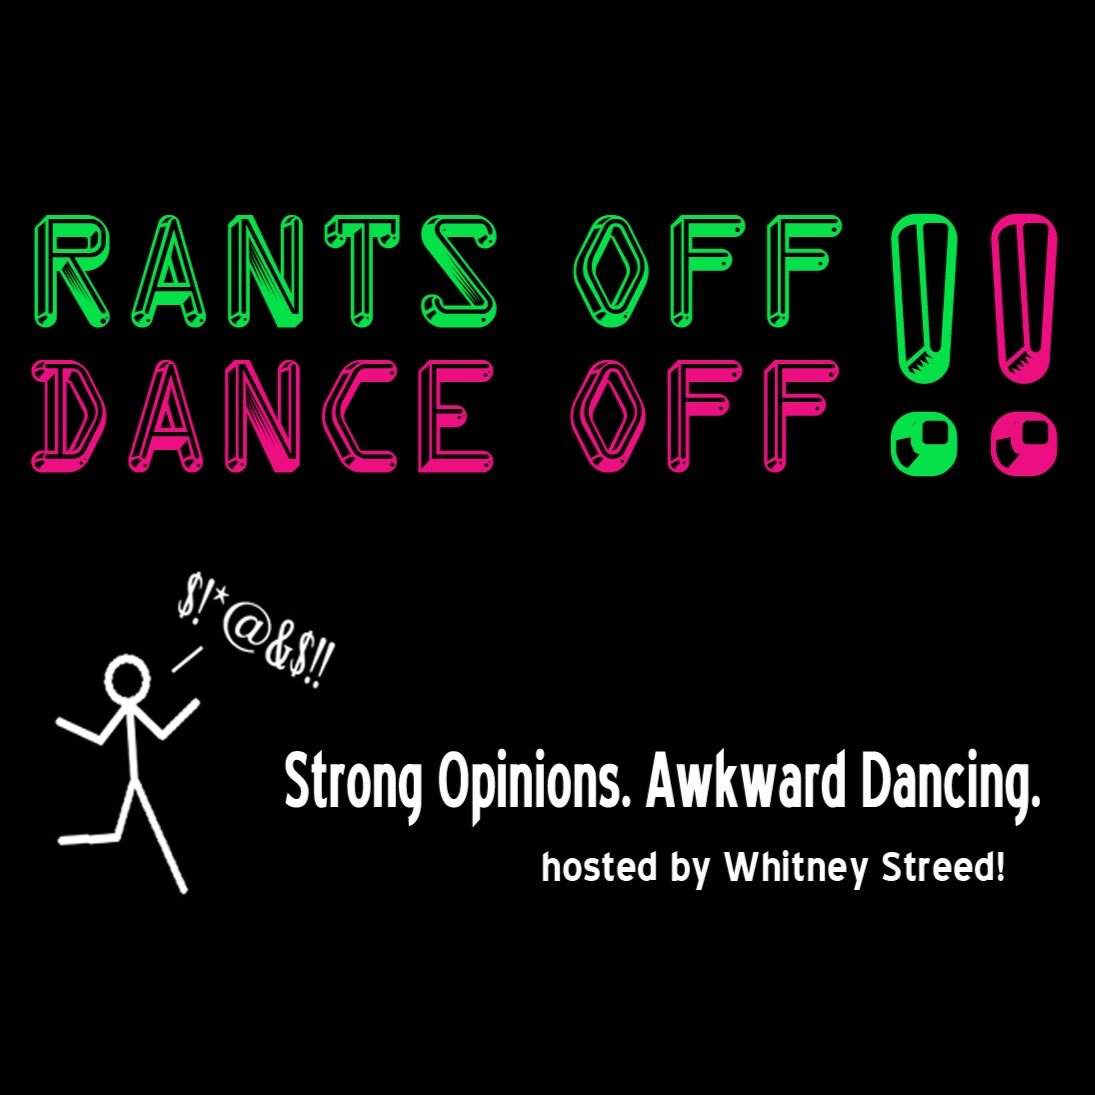 A game show in which comedians compete using their wits and dance moves. Hosted by Whitney Streed.